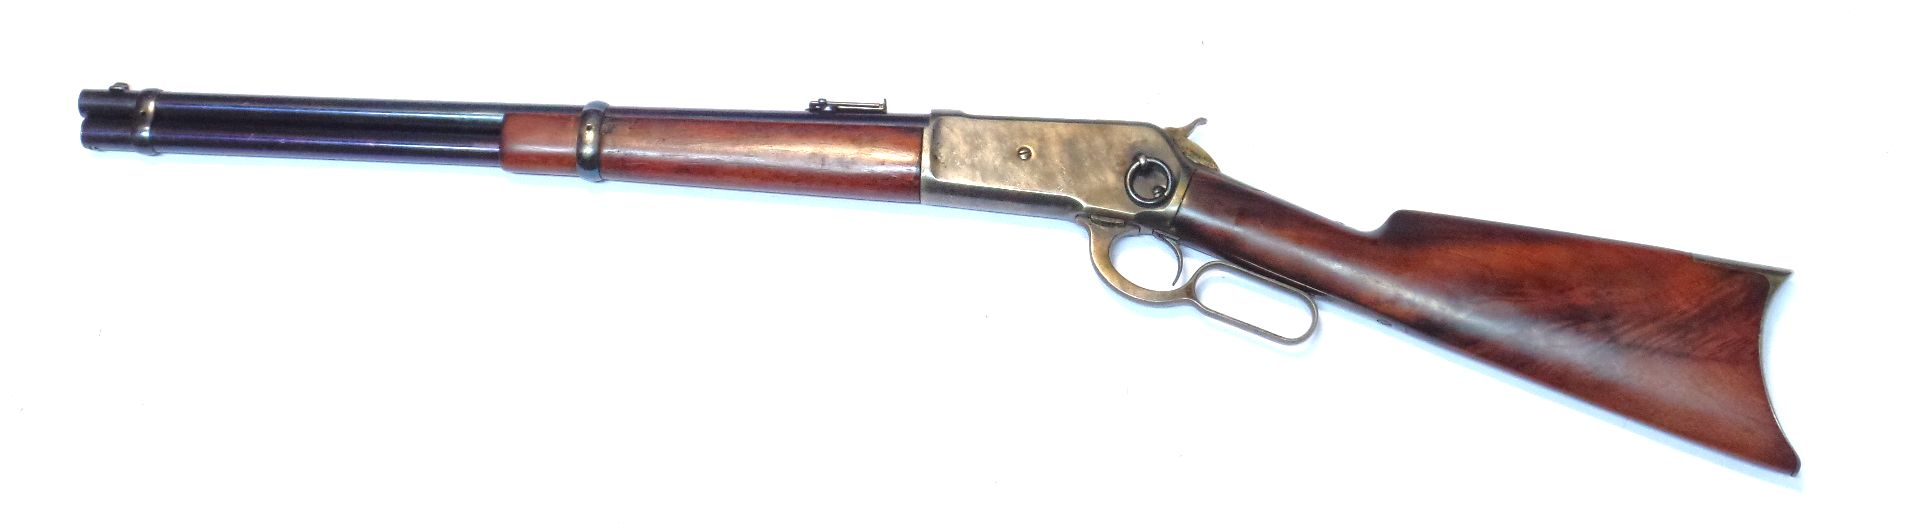 Winchester Saddle Carbine Originale 1886 calibre 38-56